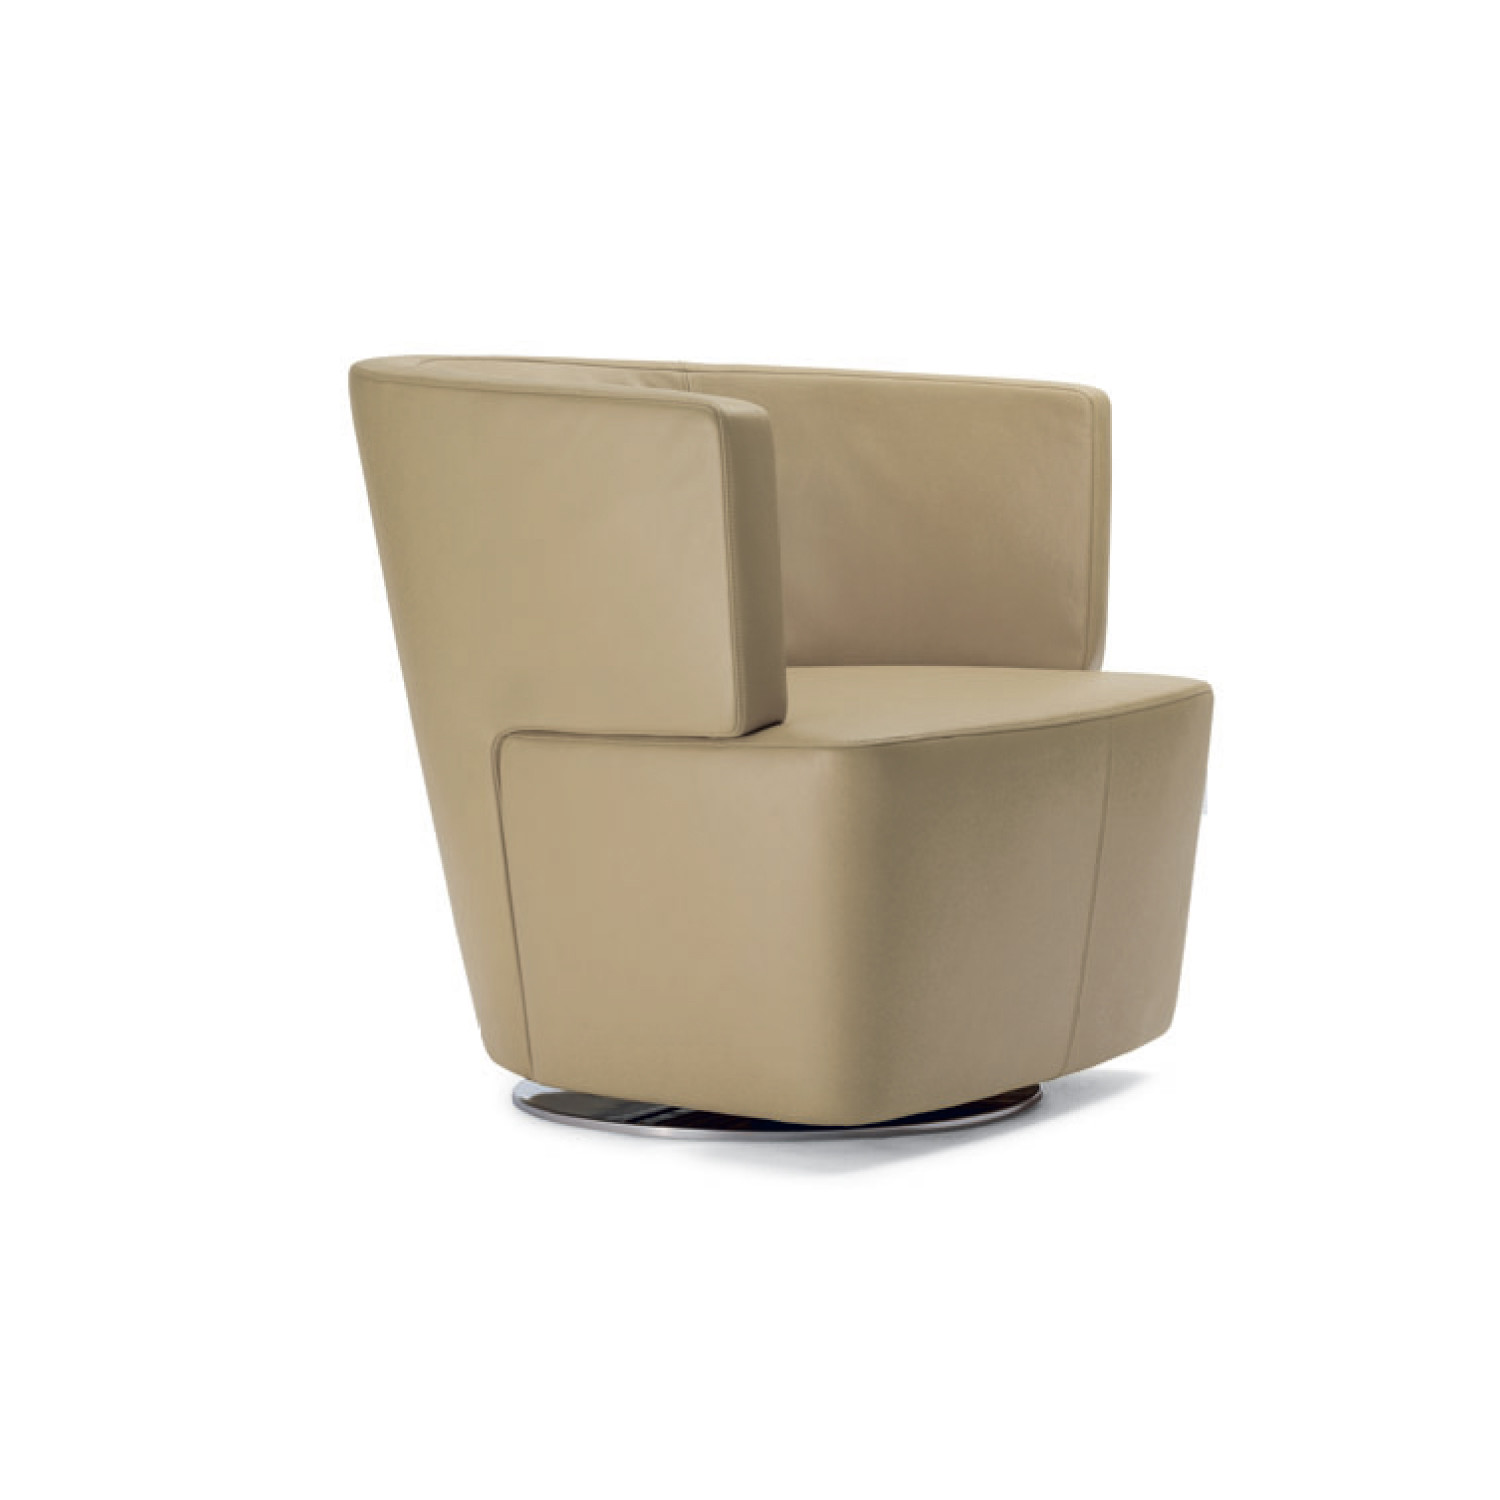 Joel Reception Armchair by Walter Knoll